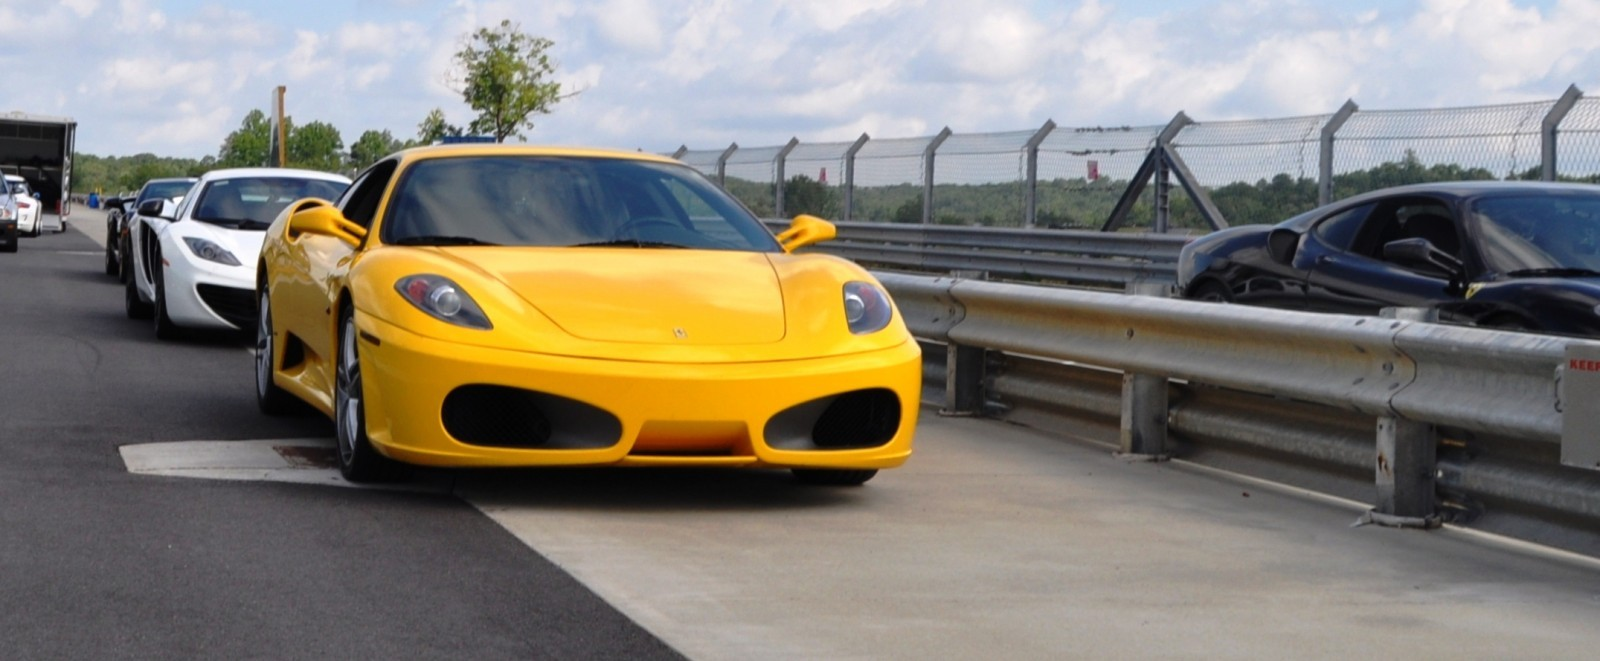 Beating the Supercar Paradox - 2007 Ferrari F430 at Velocity Motorsports Supercar Track Drive 15